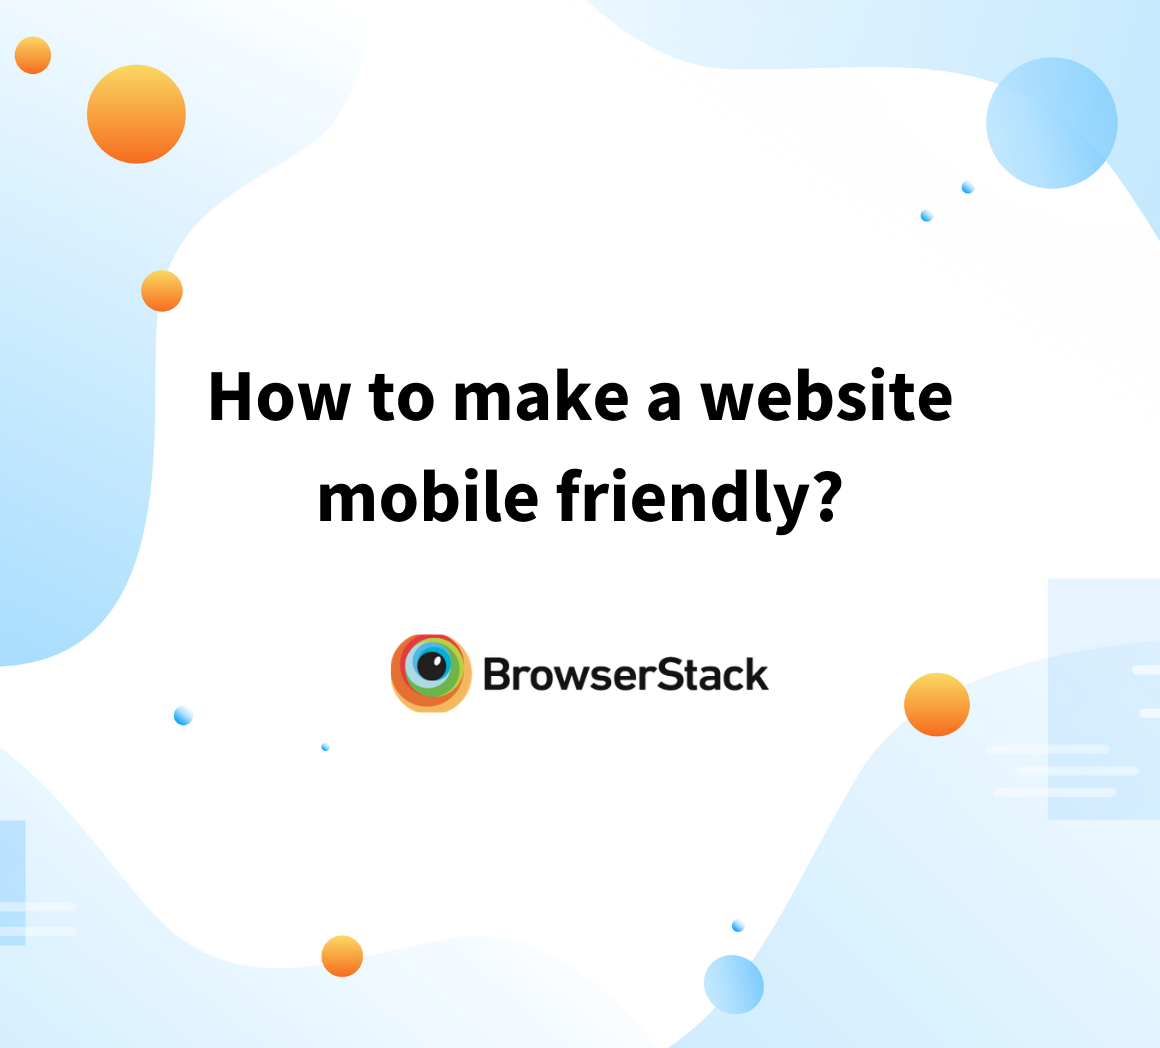 How to make a website mobile friendly?